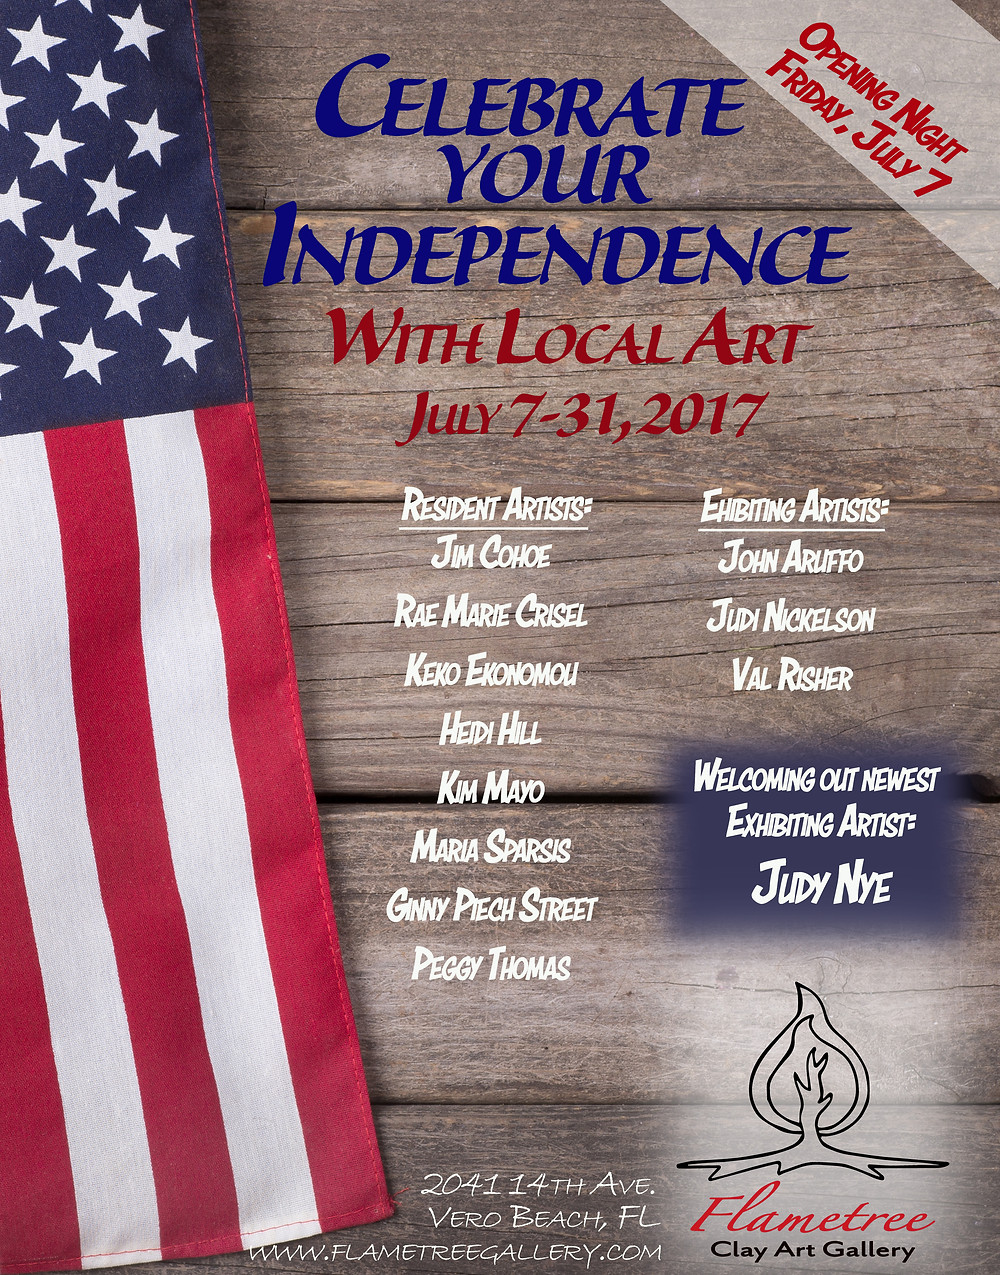 Celebrate your Independence with Local Clay Art!